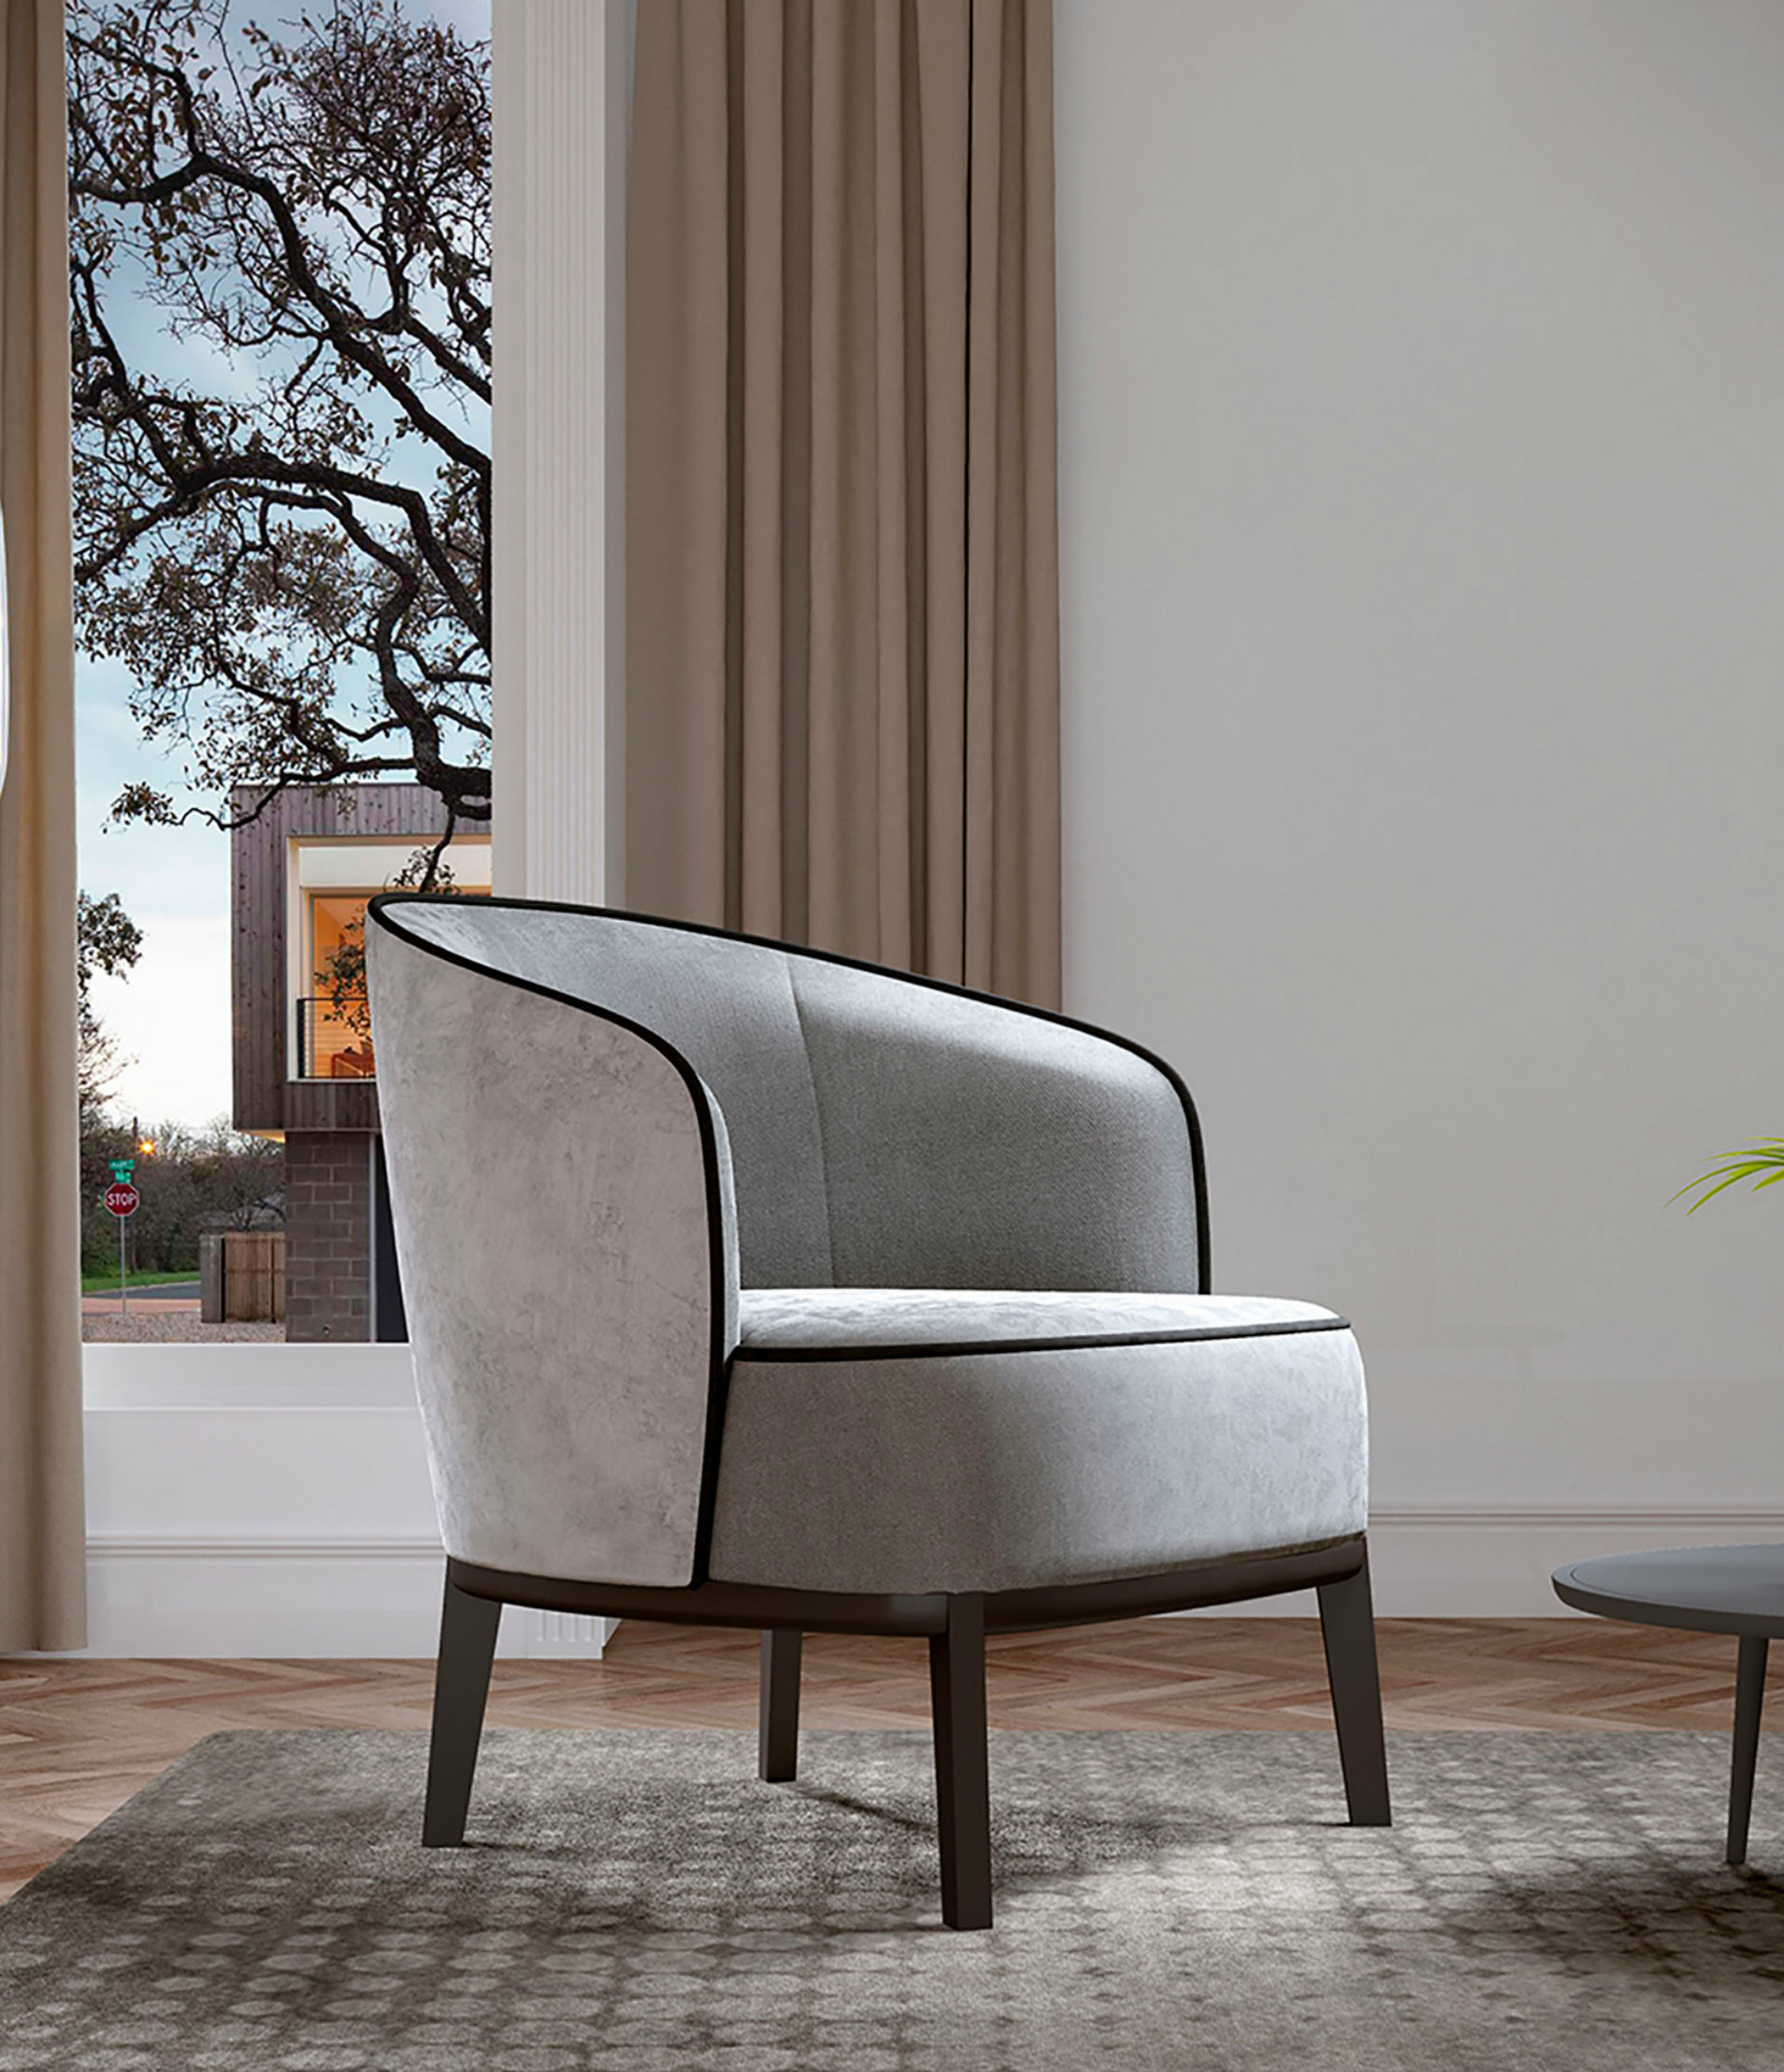 5 unique chairs that you will love in Maison et Objet 2018 maison et objet 5 Unique Chairs That You Will Love in Maison et Objet 2018 imagem 3